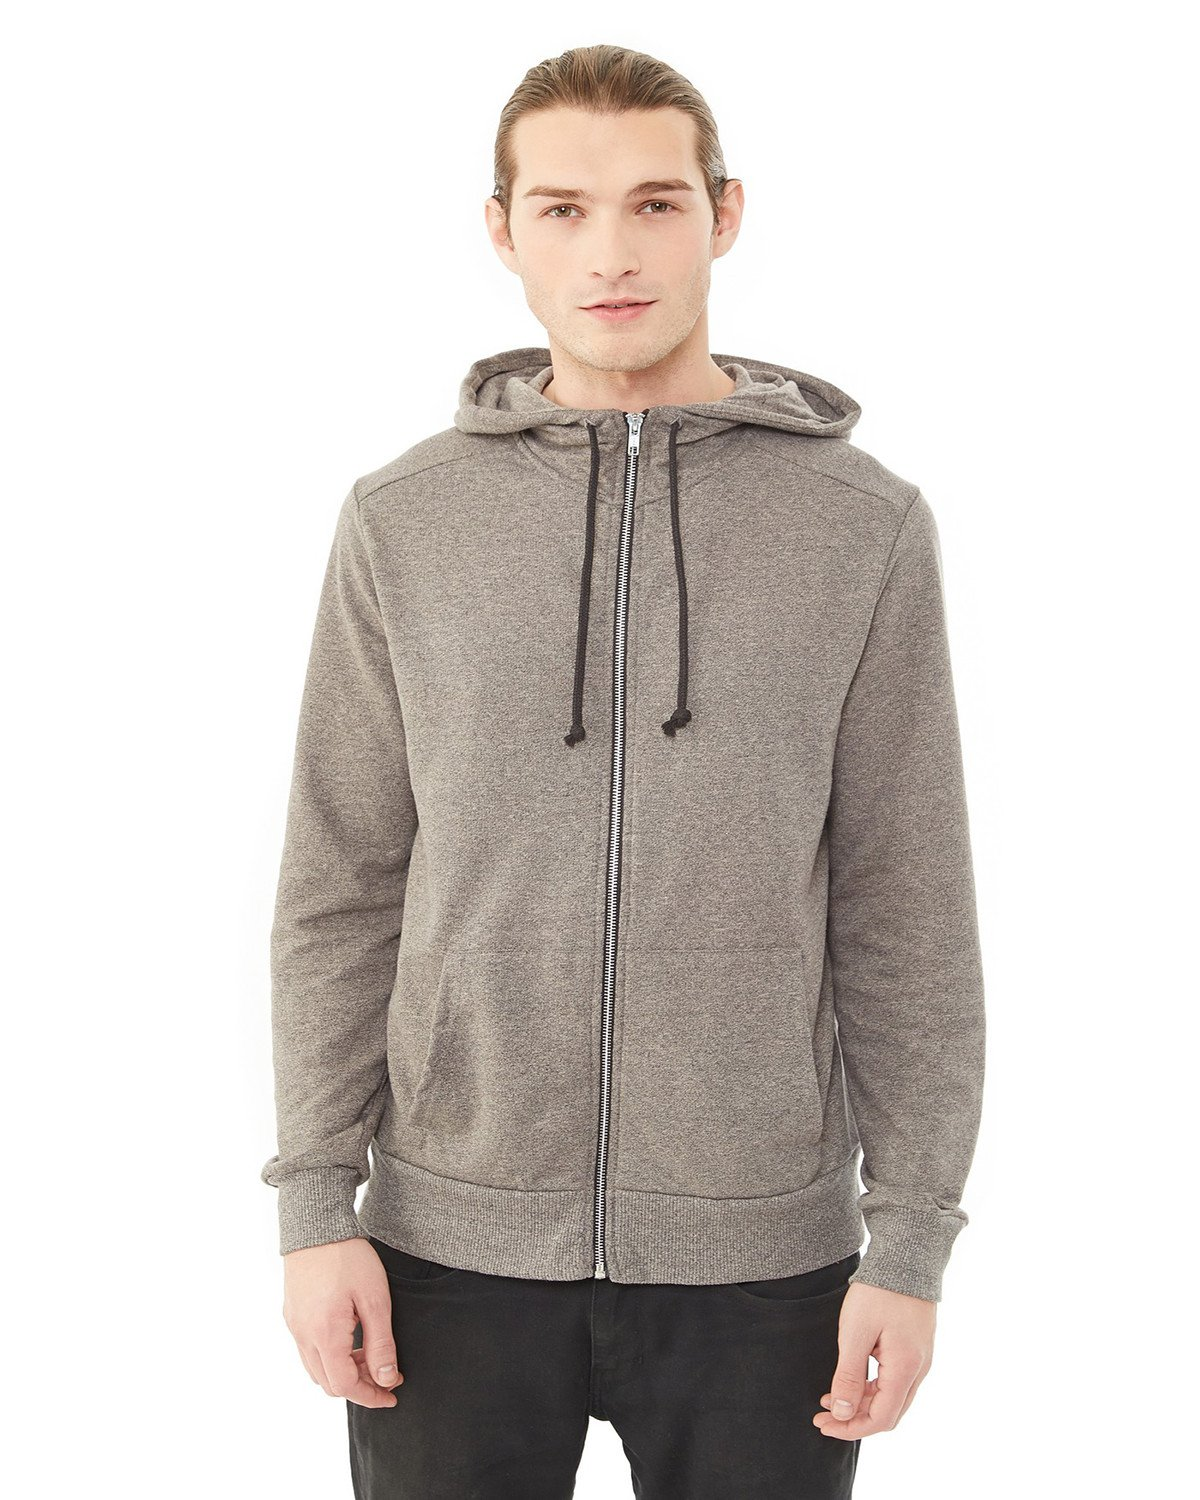 Alternative Apparel - 09880E - Men's Champ Eco-Mock Twist Ringer Sweatshirt